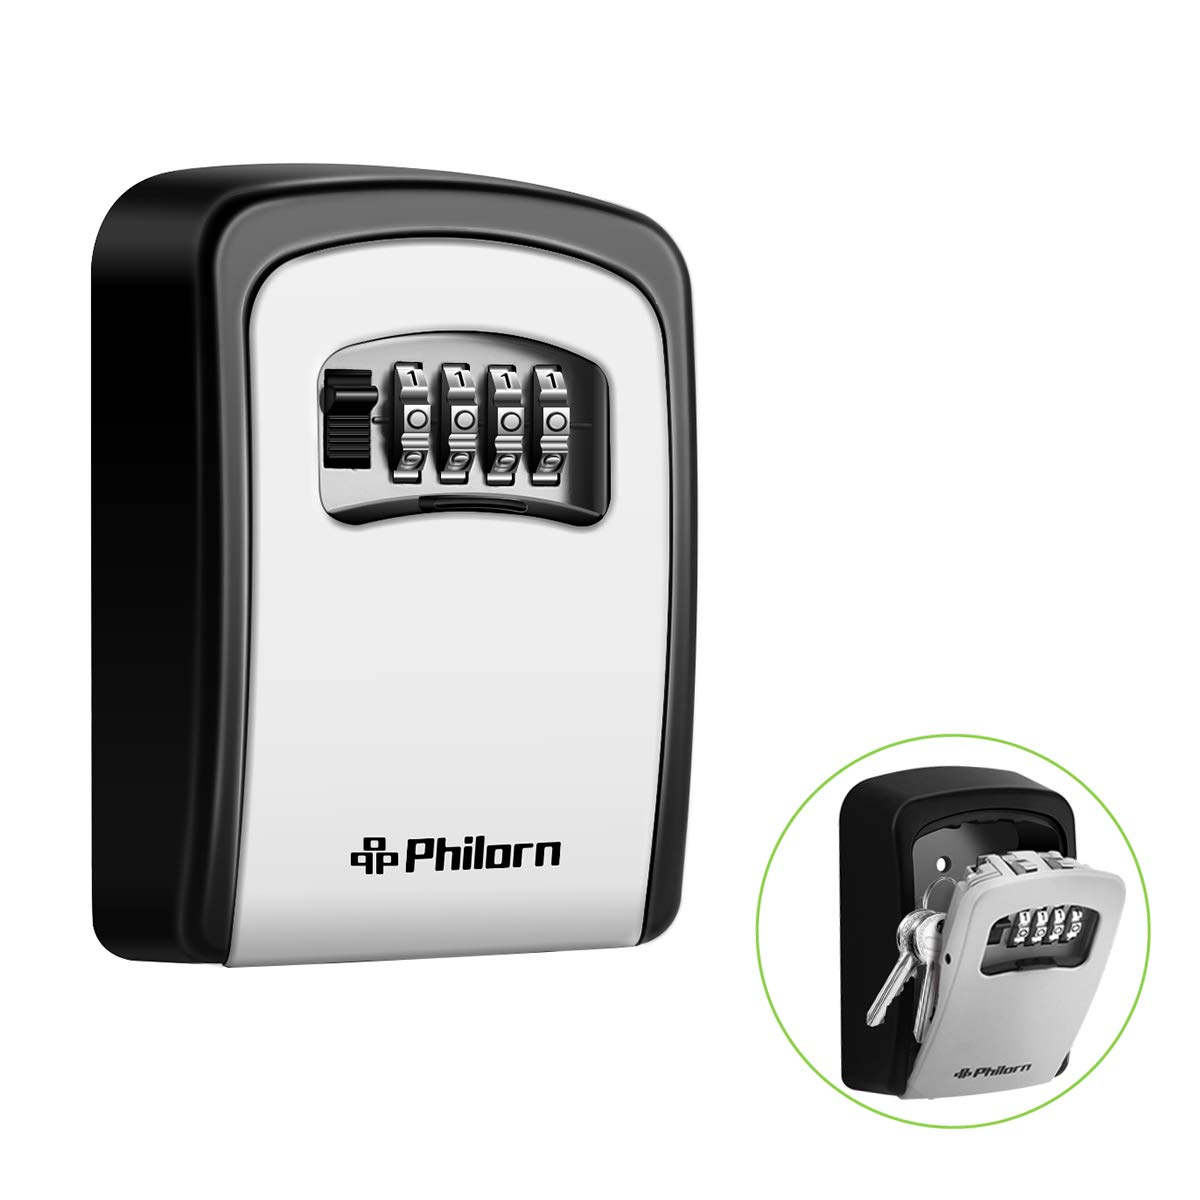 PHILORN Key Lock Box, 4-Digit Combination Lockbox | Resettable Code - Weatherproof - Wall or Door Mounted | Top Security, Ultra-Sturdy Key Safe for Jewelry, Card, House Key Storage